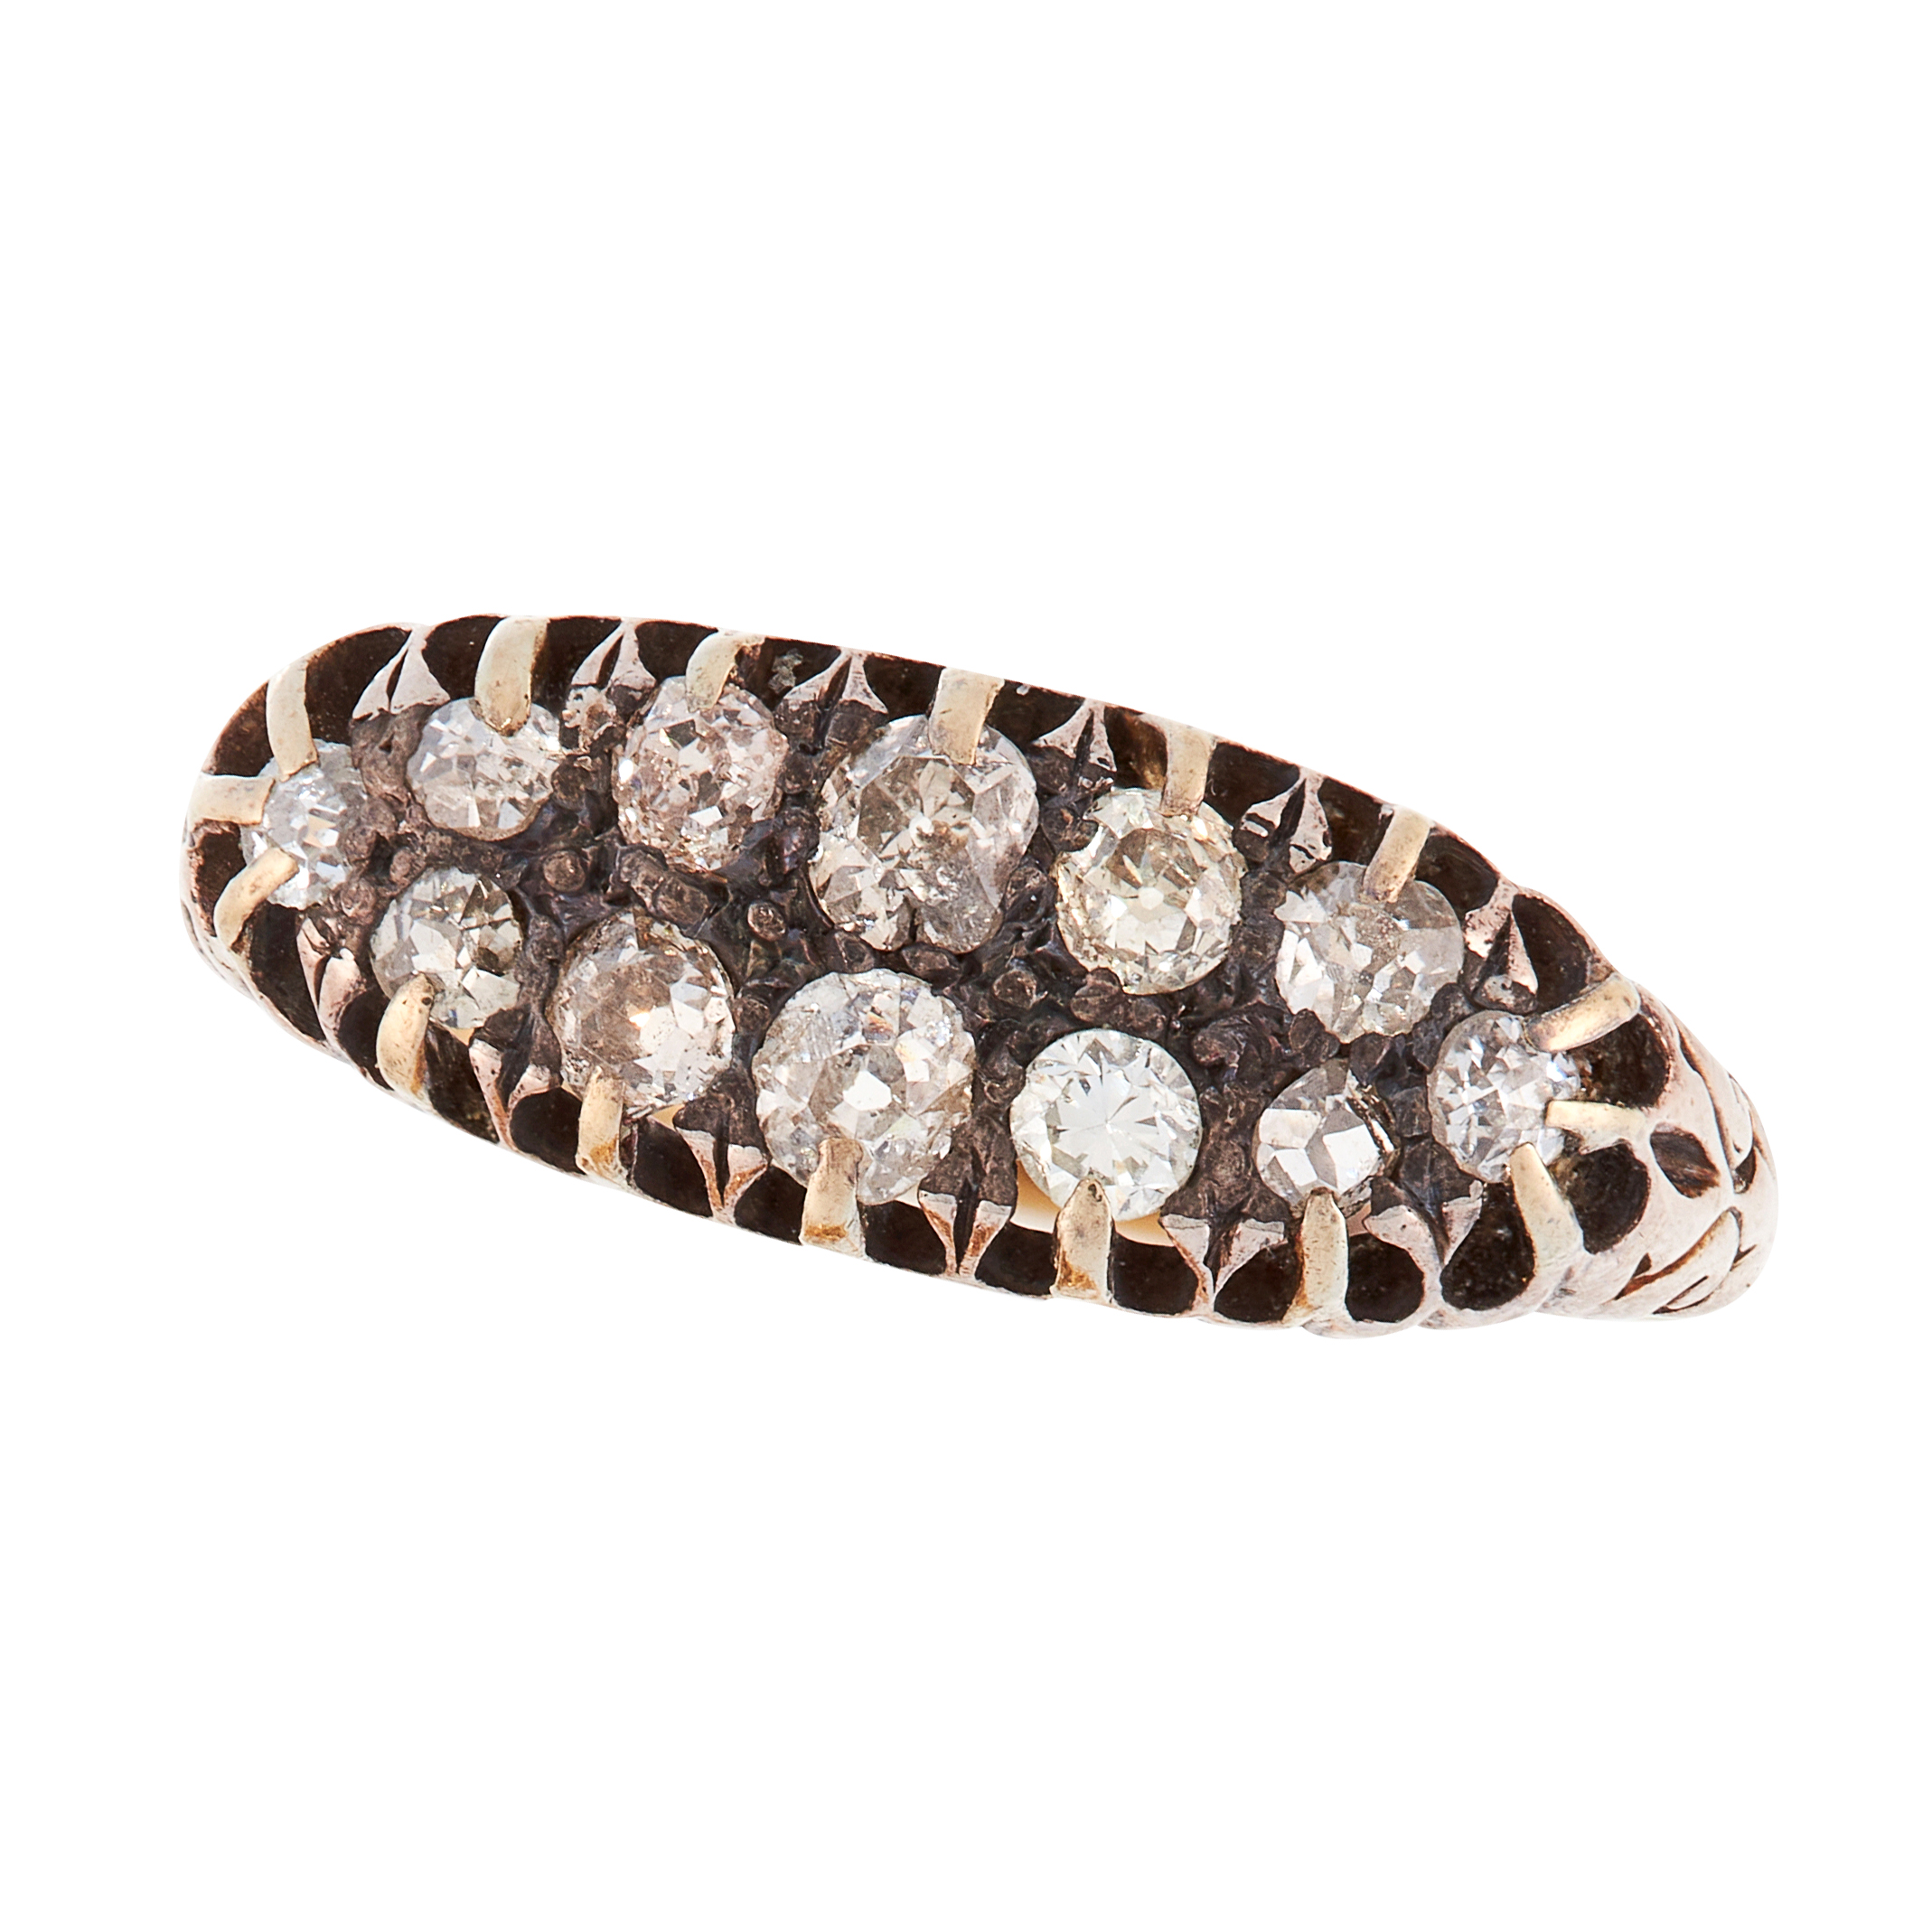 AN ANTIQUE DIAMOND HALF ETERNITY BAND RING, 19TH CENTURY in high carat yellow gold, the face set